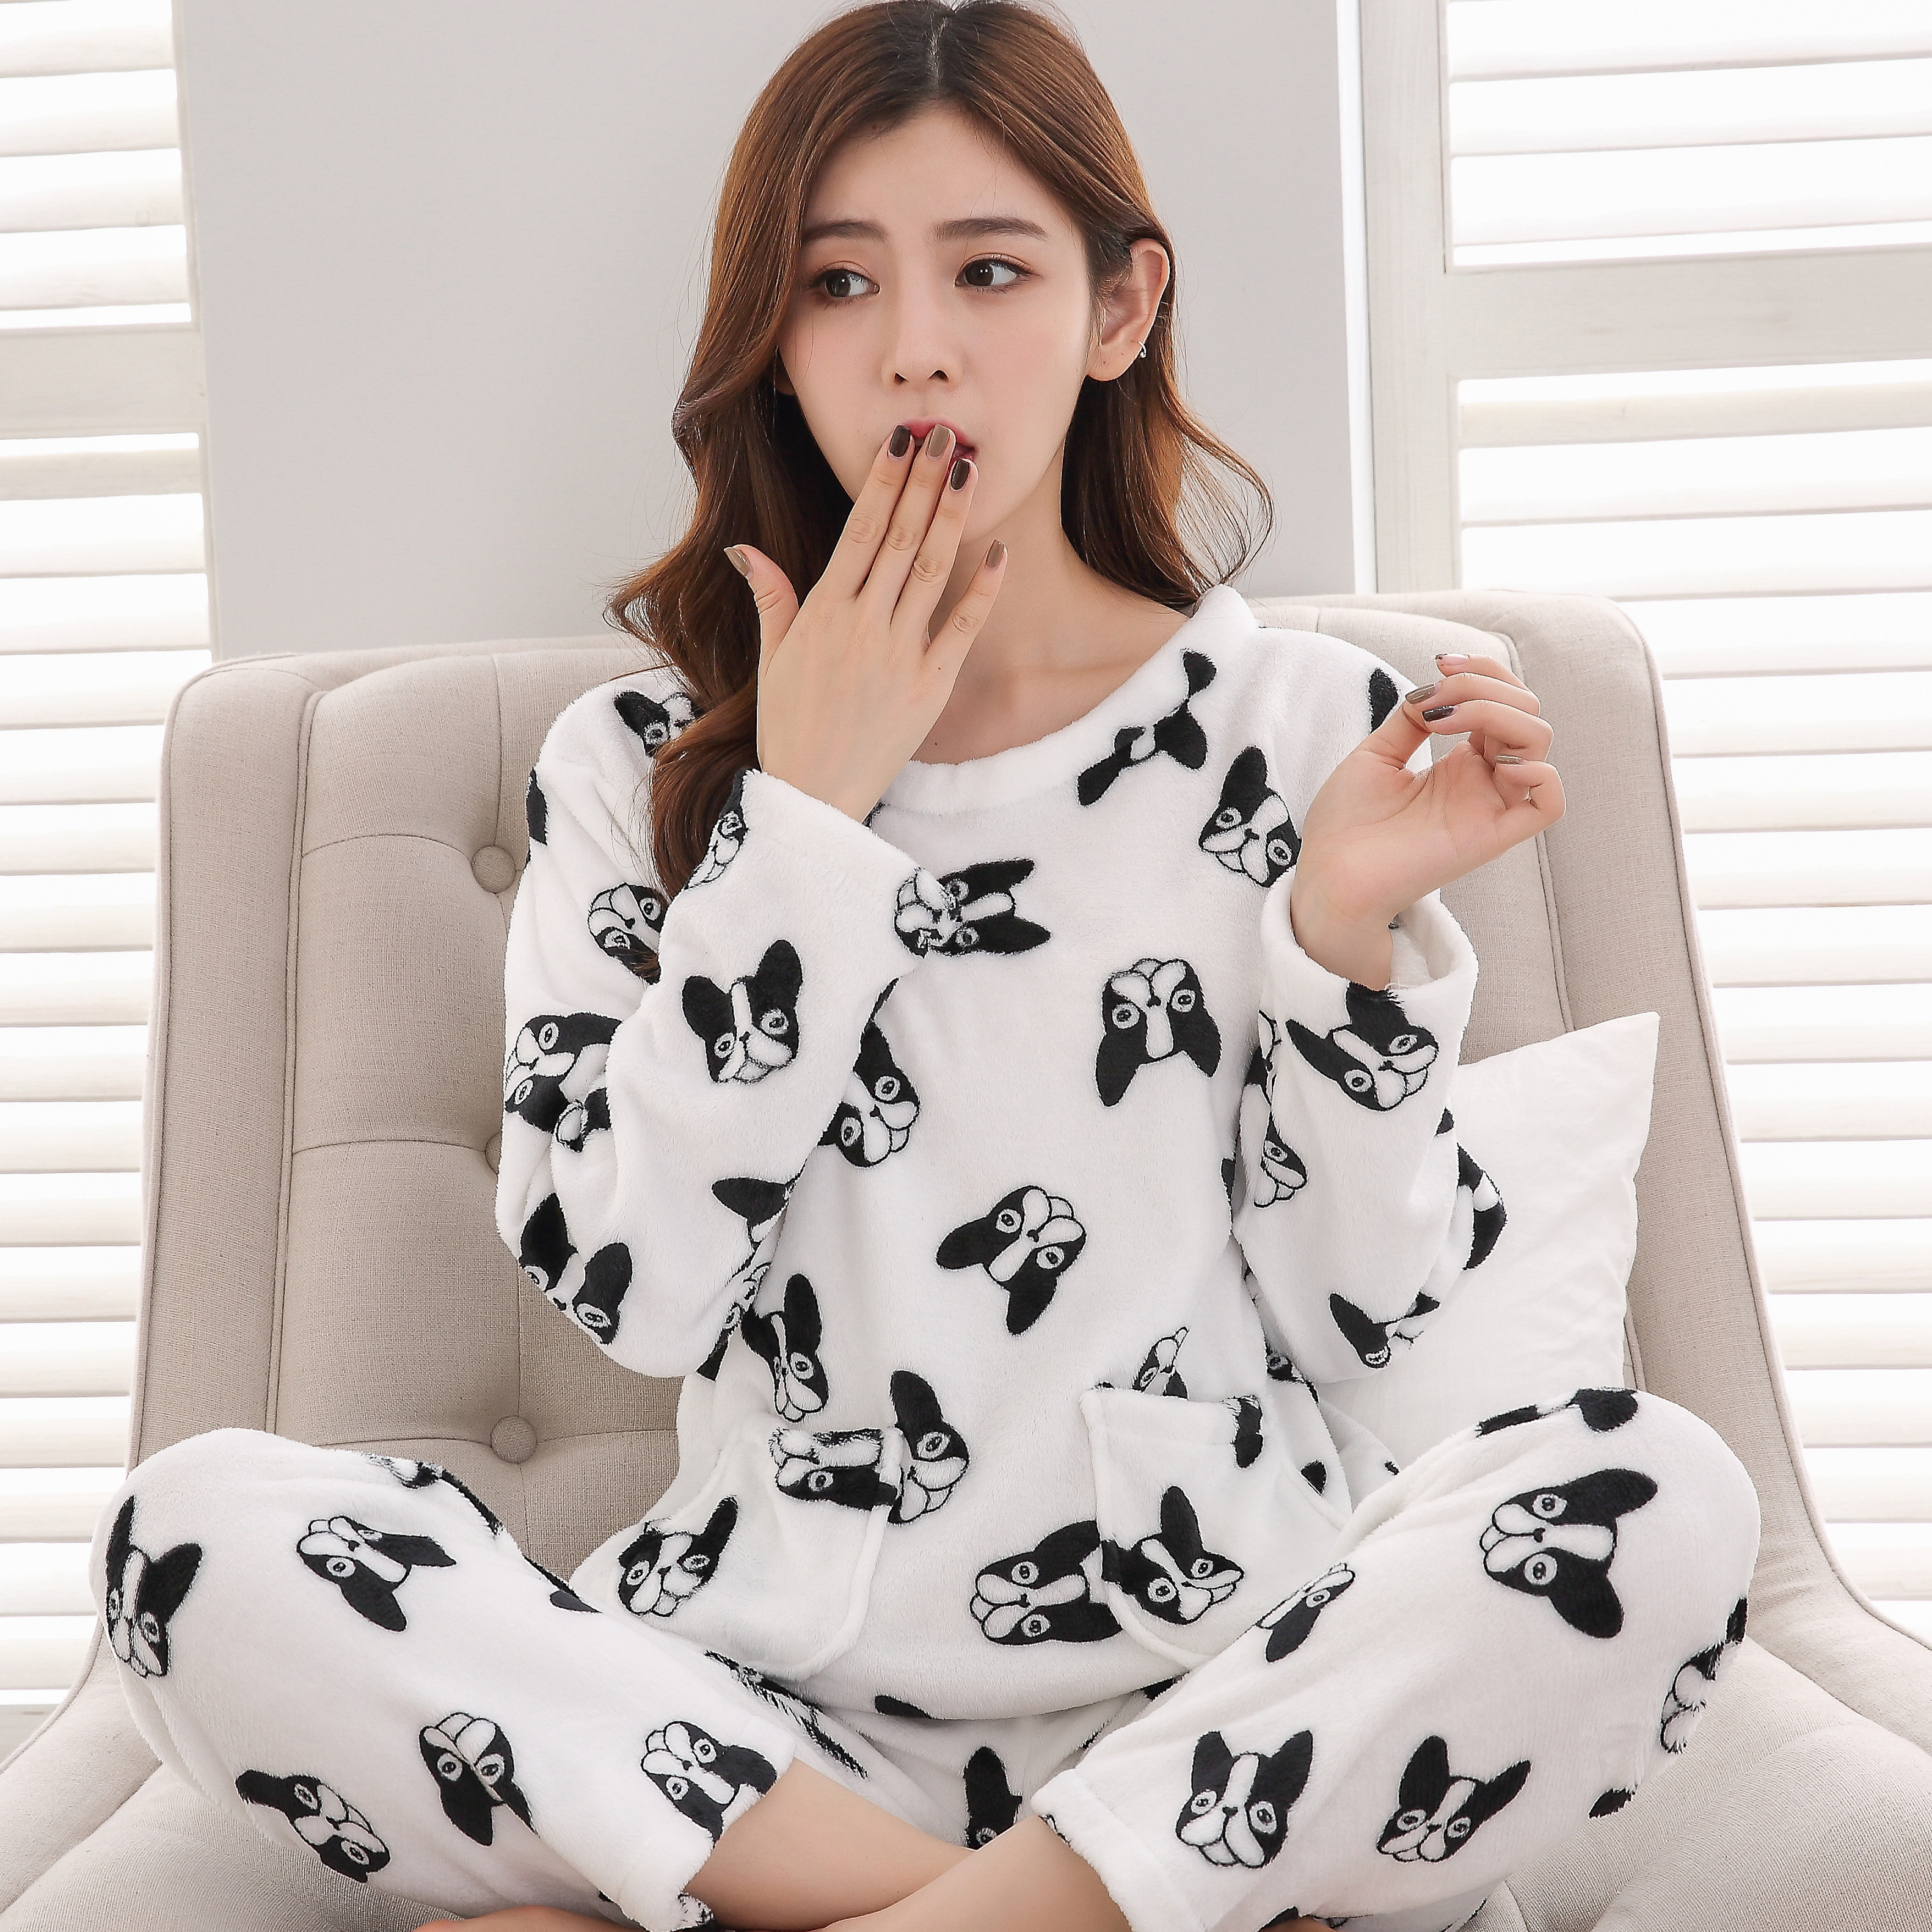 Underwear Women 2018 New Warm Flannel   Pajamas     Set   for Women Cute Print Women Sleepwear   Set   Winter Long Sleeve Flannel   Pajamas